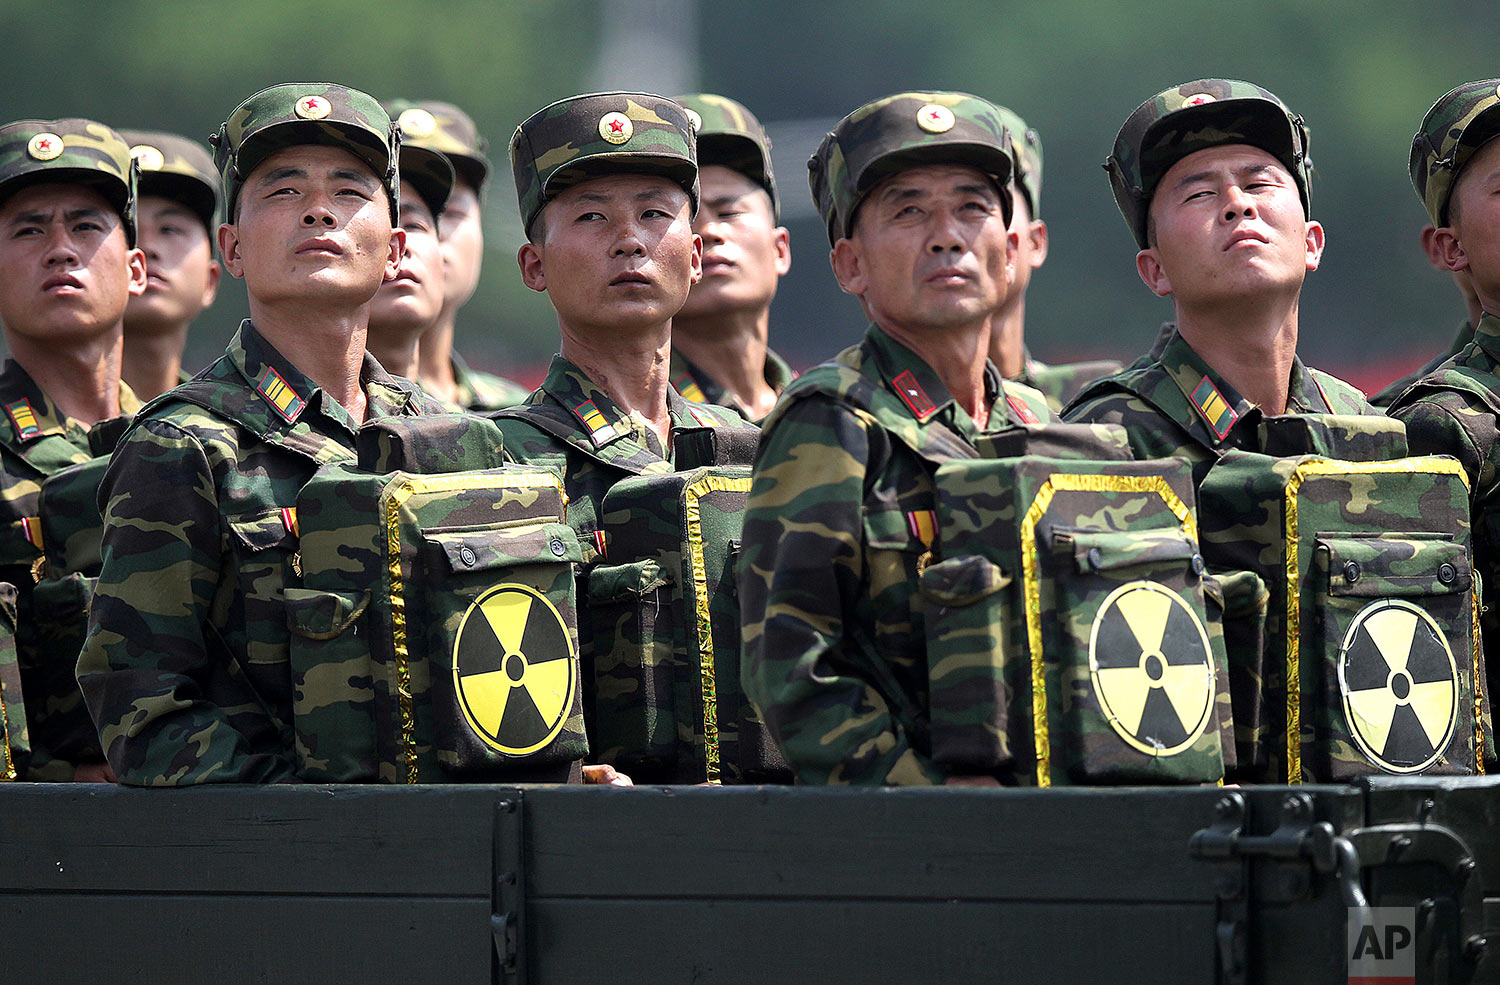 North Korean soldiers turn to look toward their leader, Kim Jong Un, as they carry packs marked with the nuclear symbol during a parade marking the 60th anniversary of the Korean War armistice in Pyongyang, North Korea, on July 27, 2013. (AP Photo/Wong Maye-E)